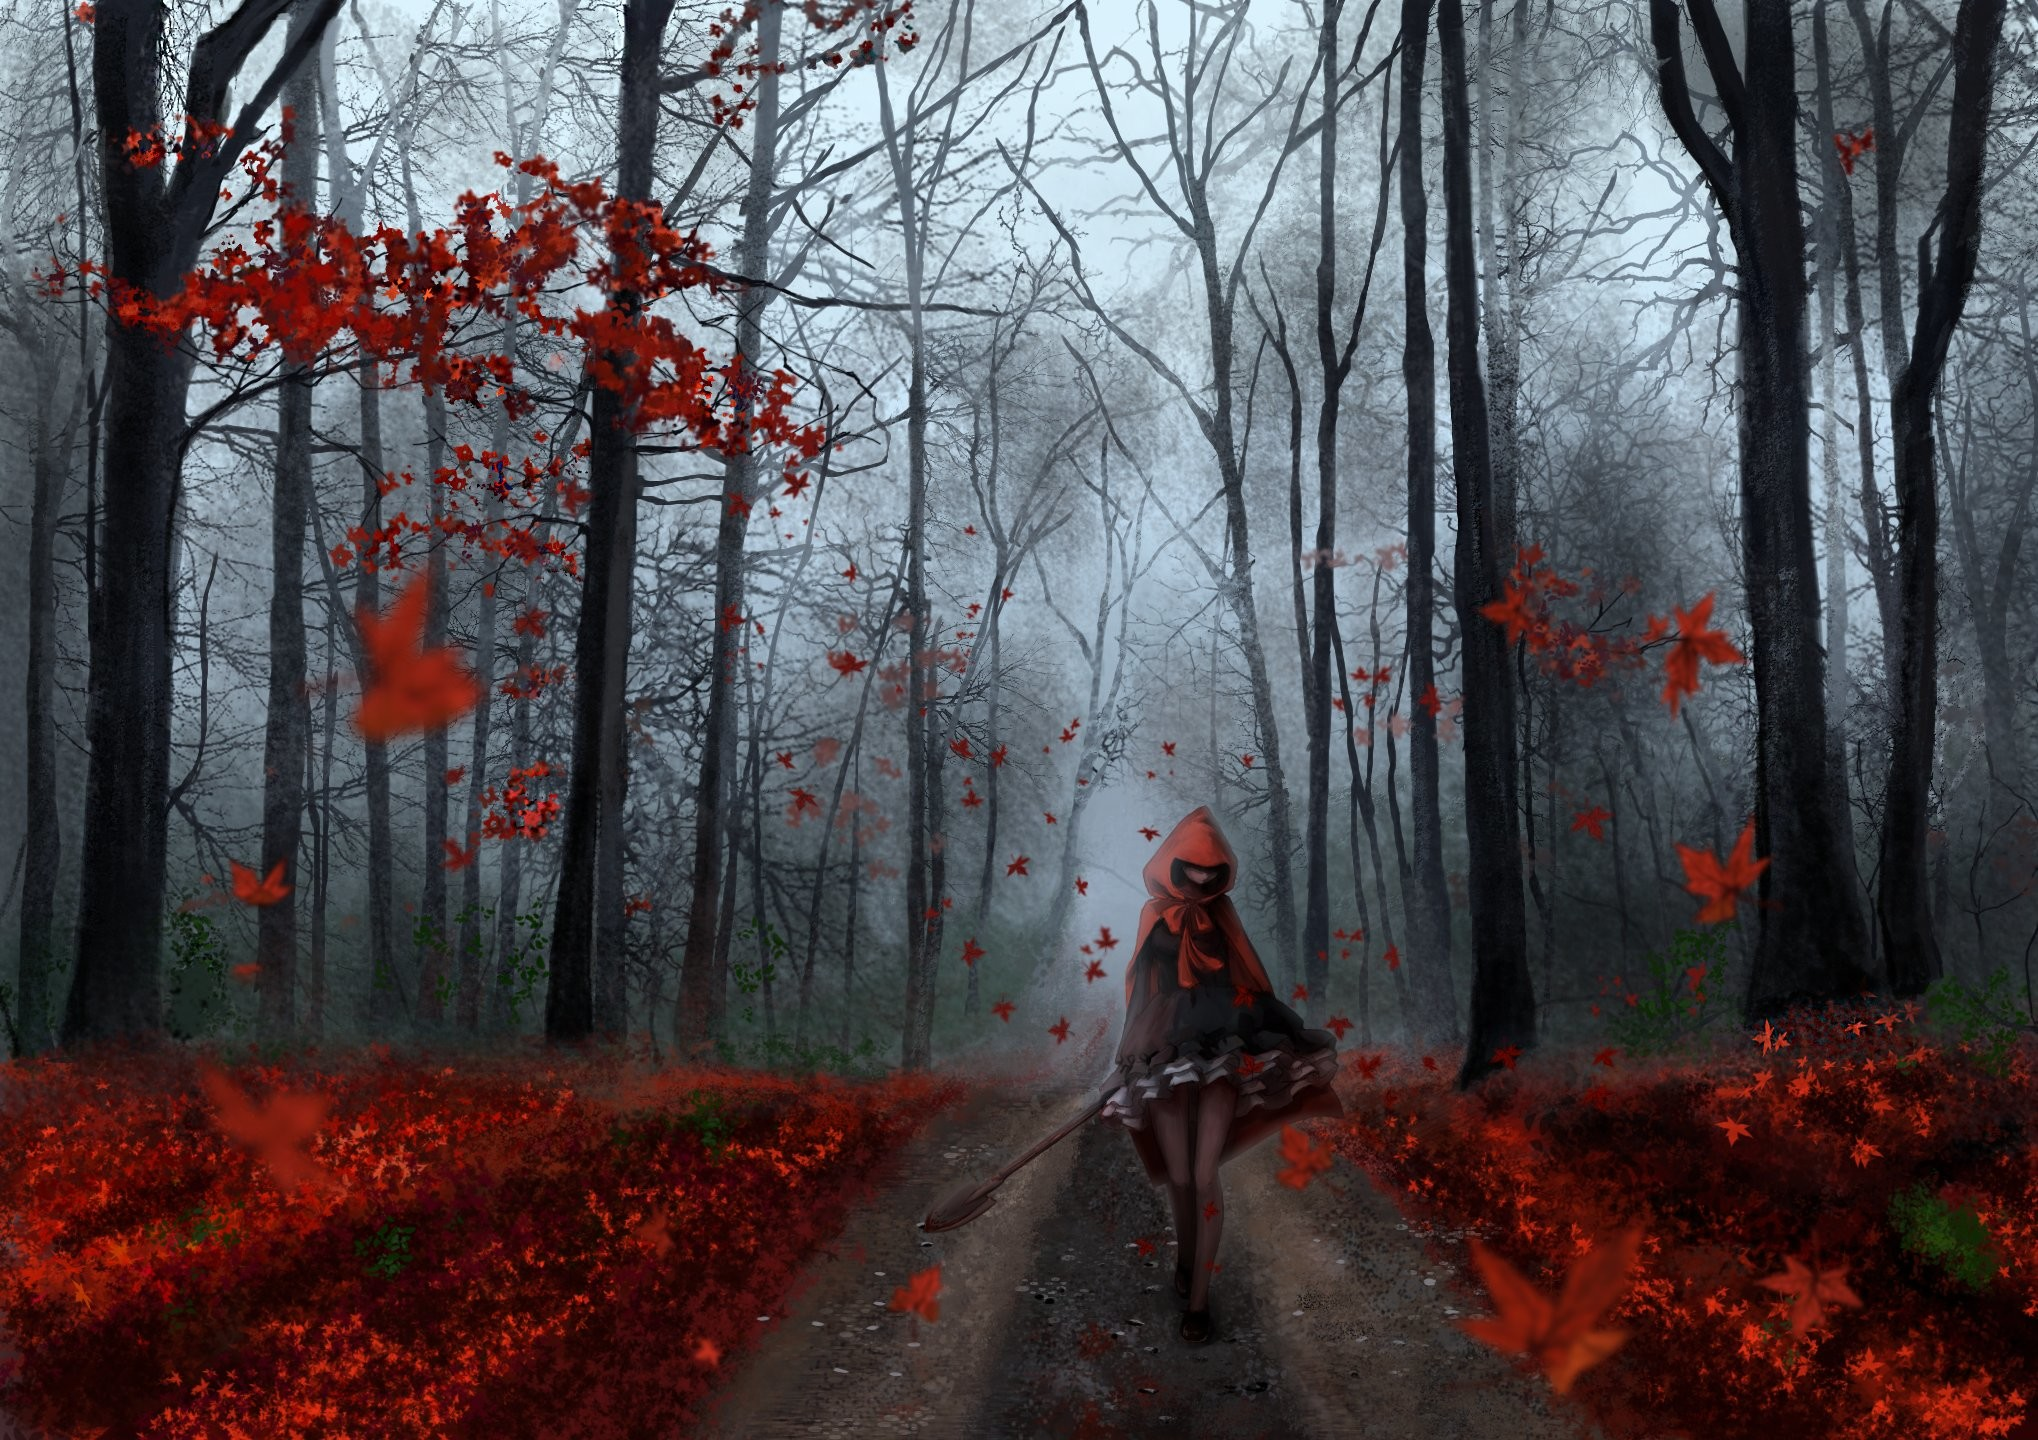 Anime girl forest autumn tree red leaf road wallpaper     607179    WallpaperUP